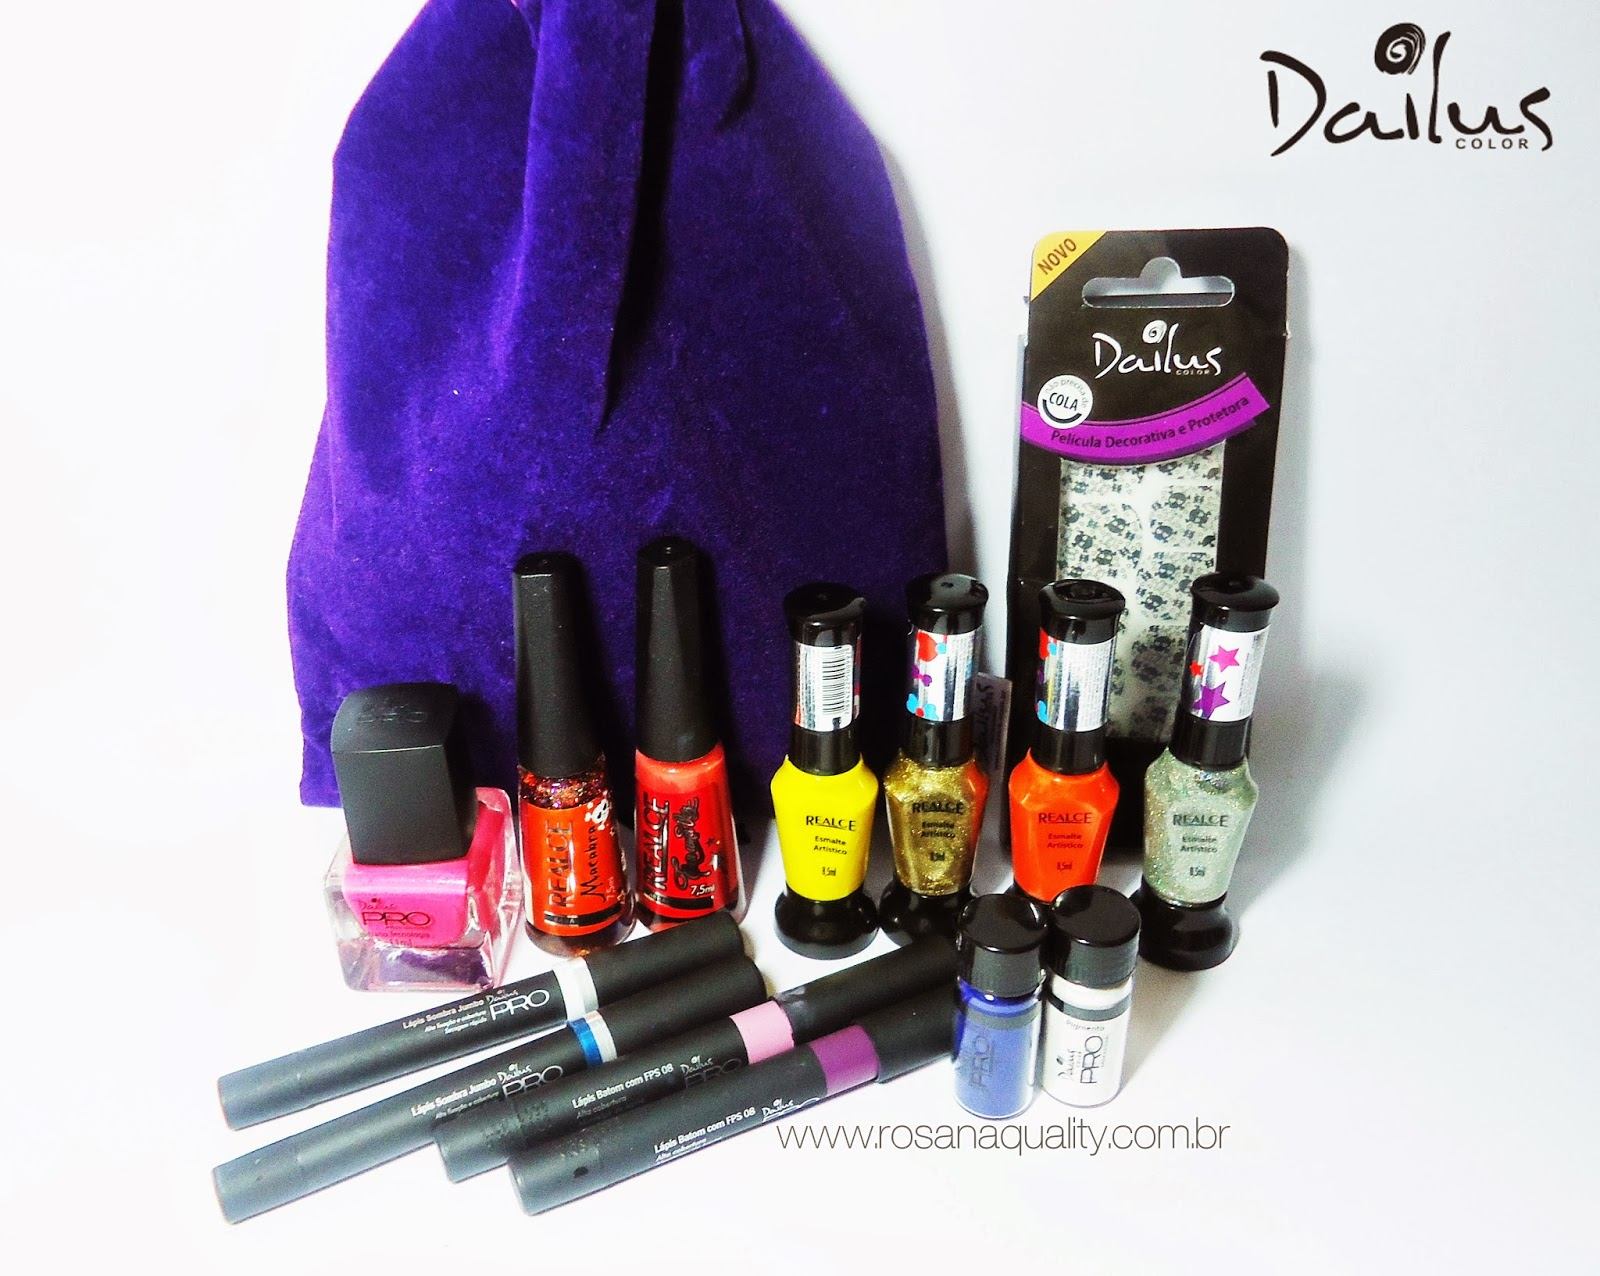 Dailus Beauty Fair 2013